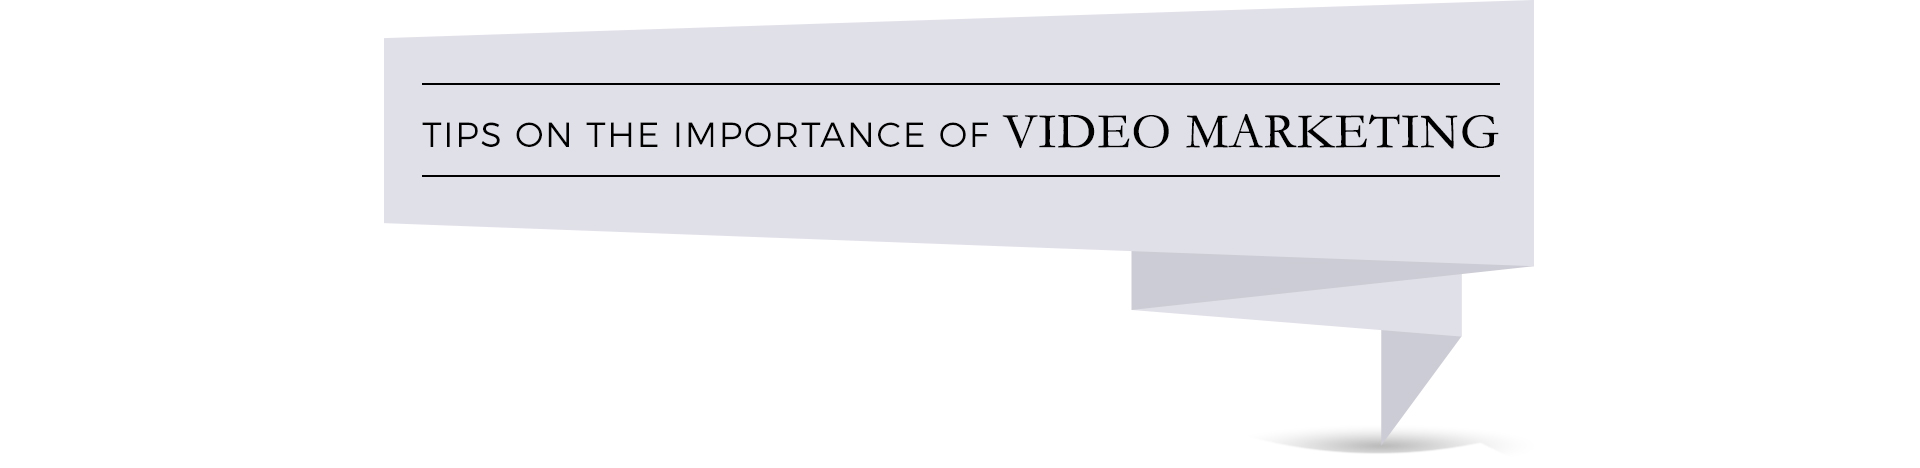 tips on video marketing-button